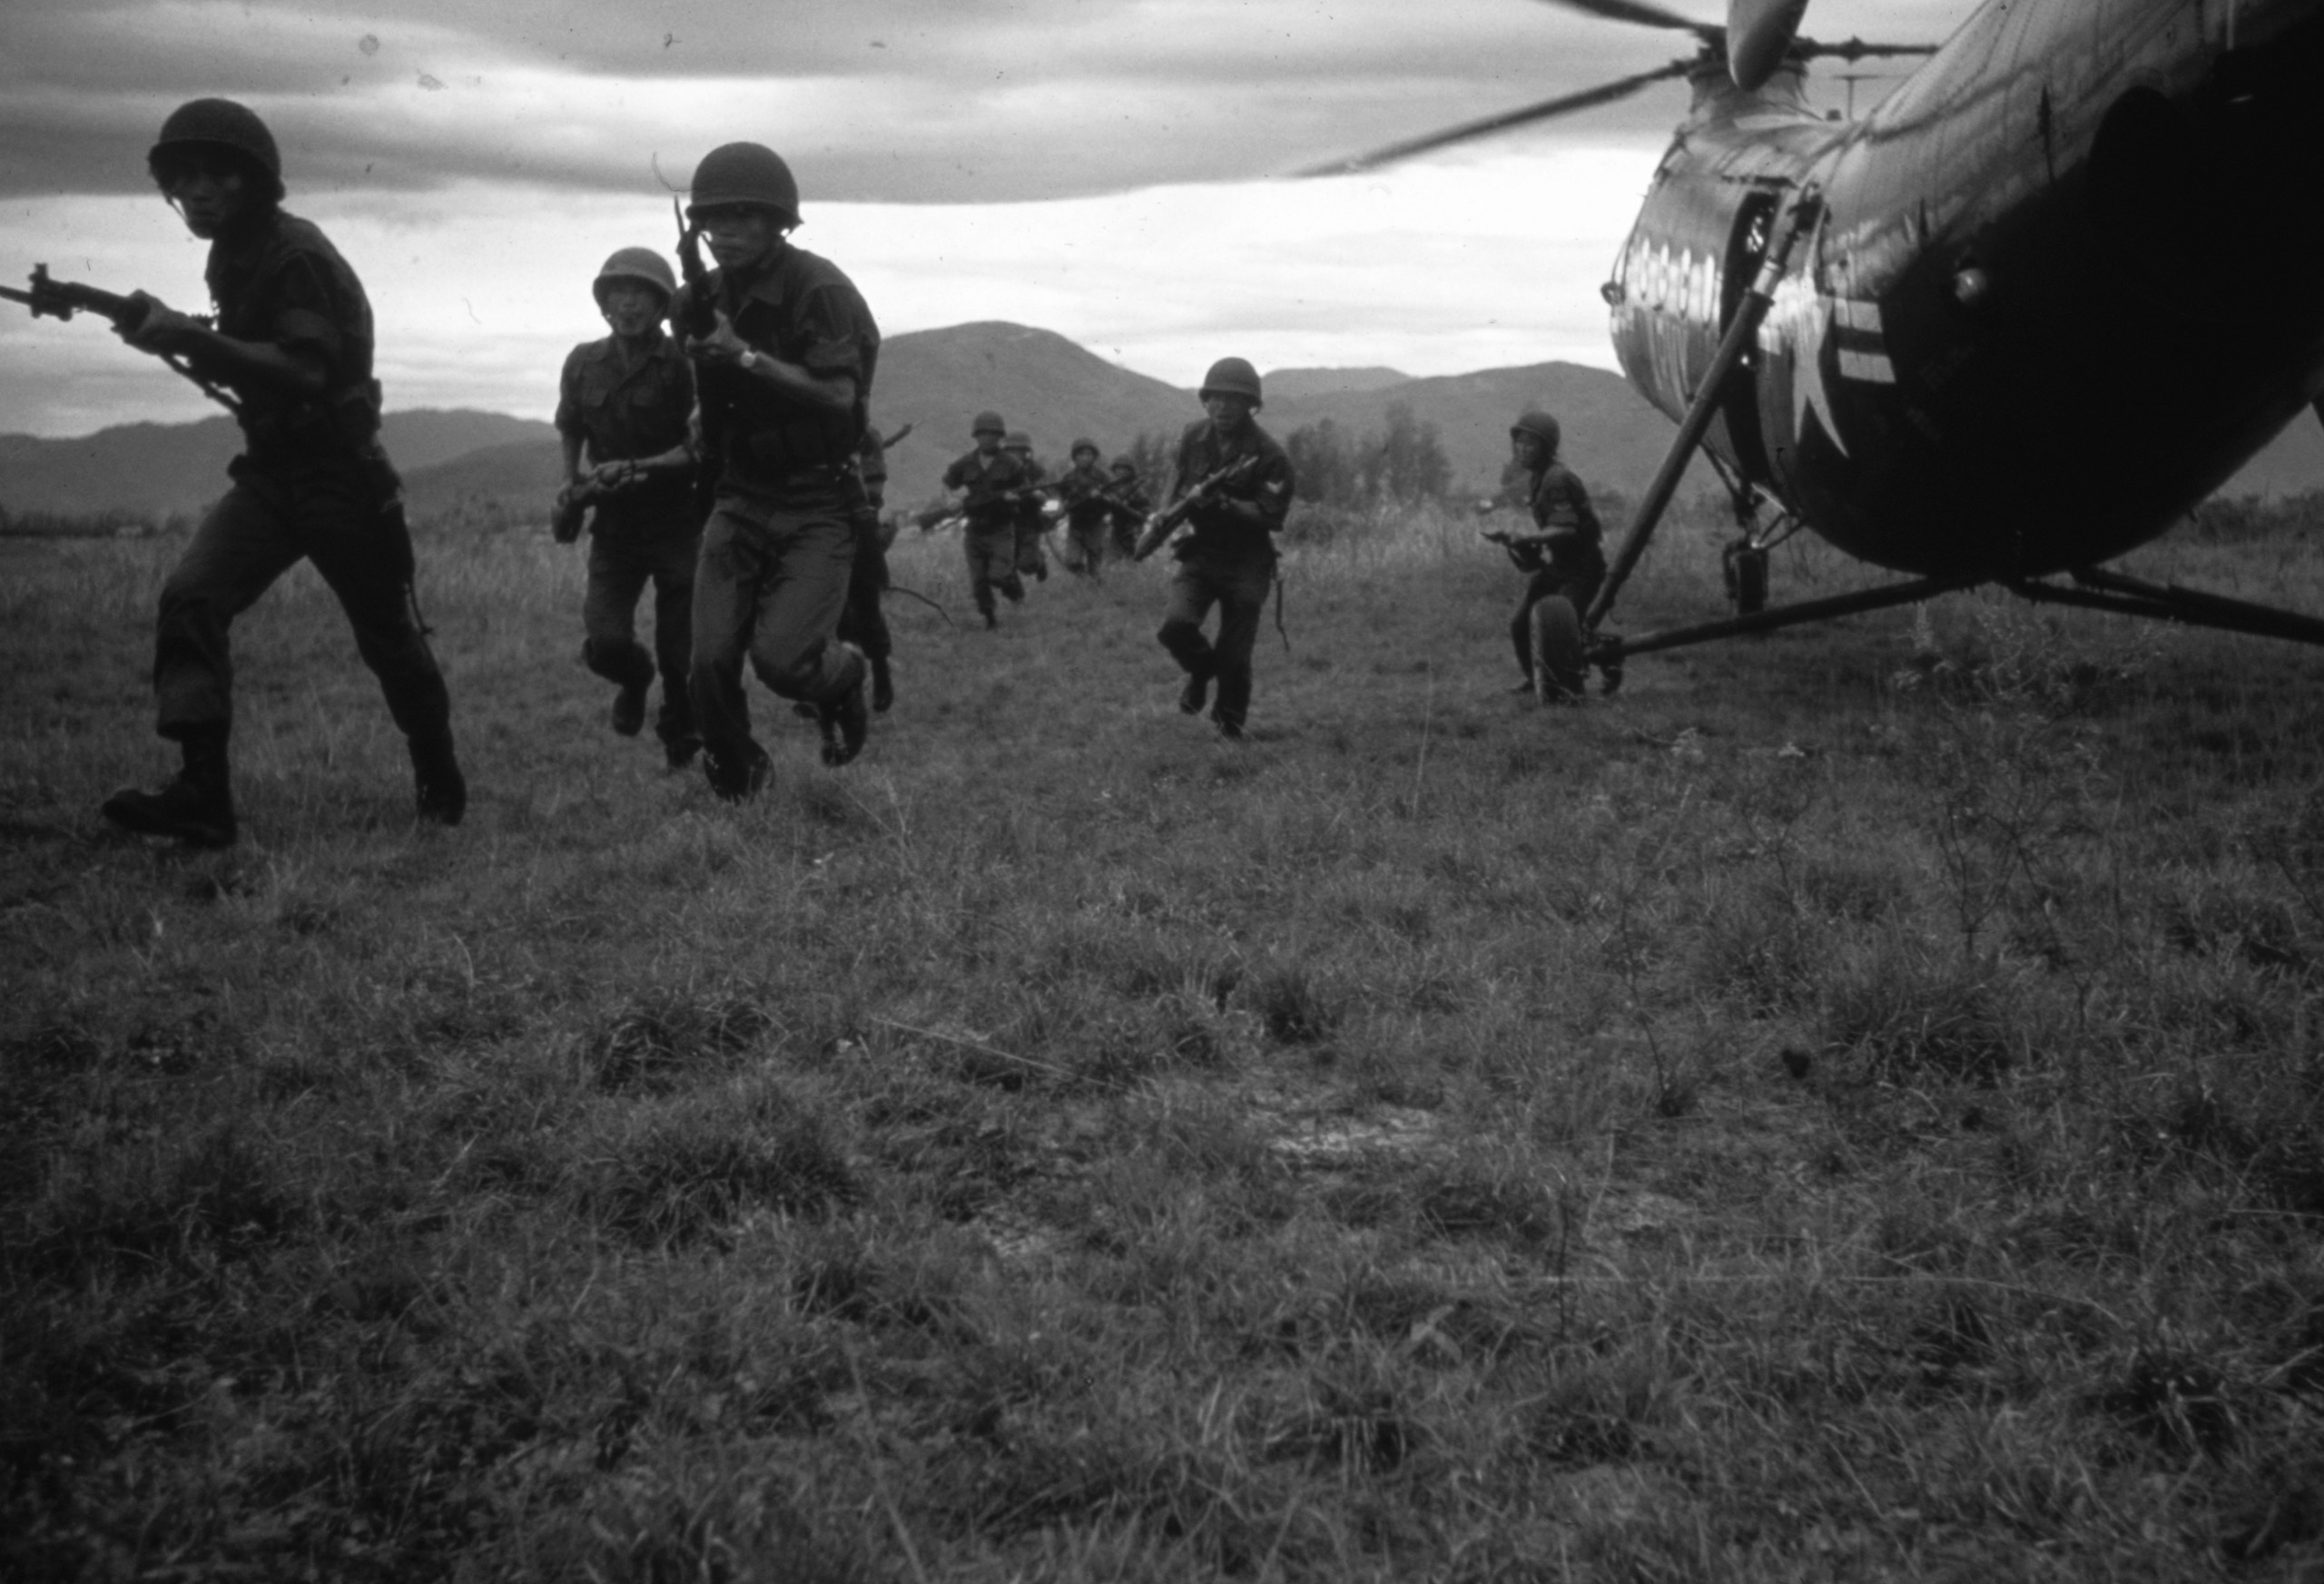 Vietnamese soldiers, on their way to assault a village near Soc Tranh suspected of harboring Vietcong, disembark from US Army helicopters, 1962.